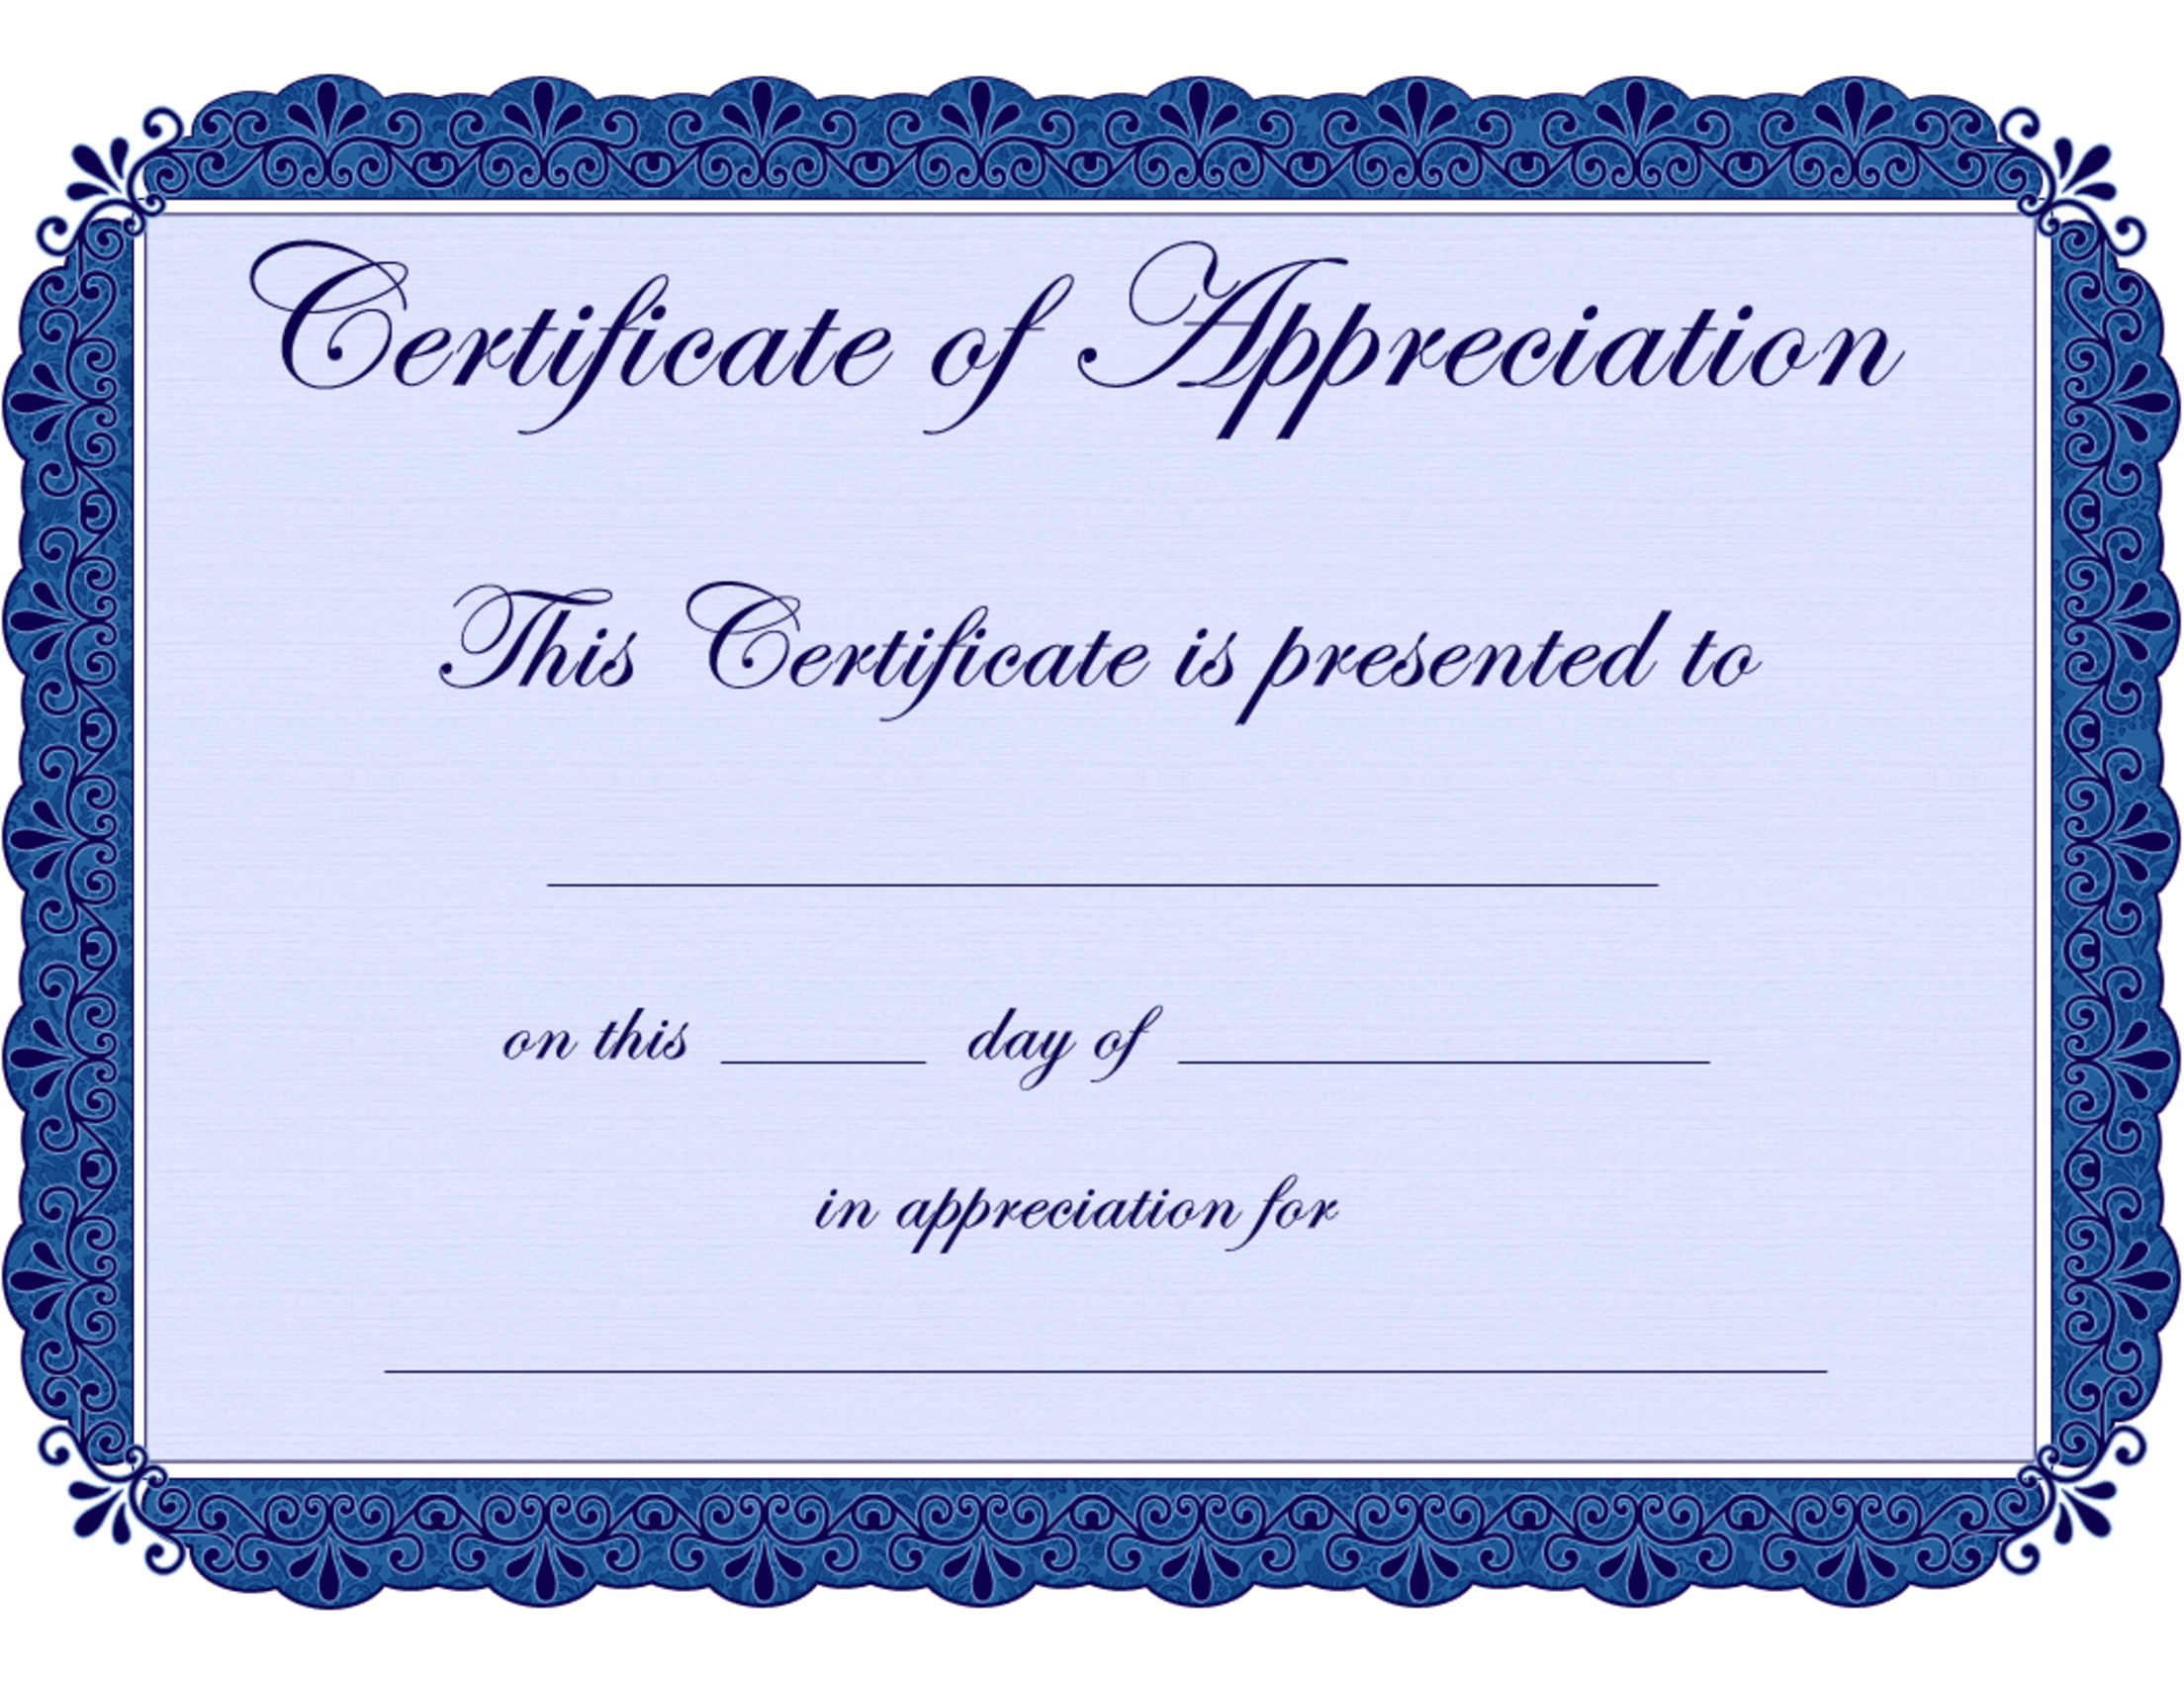 The Certificate Of Appreciation Is 8 5 X 11 Inches With Two Unmarked ...